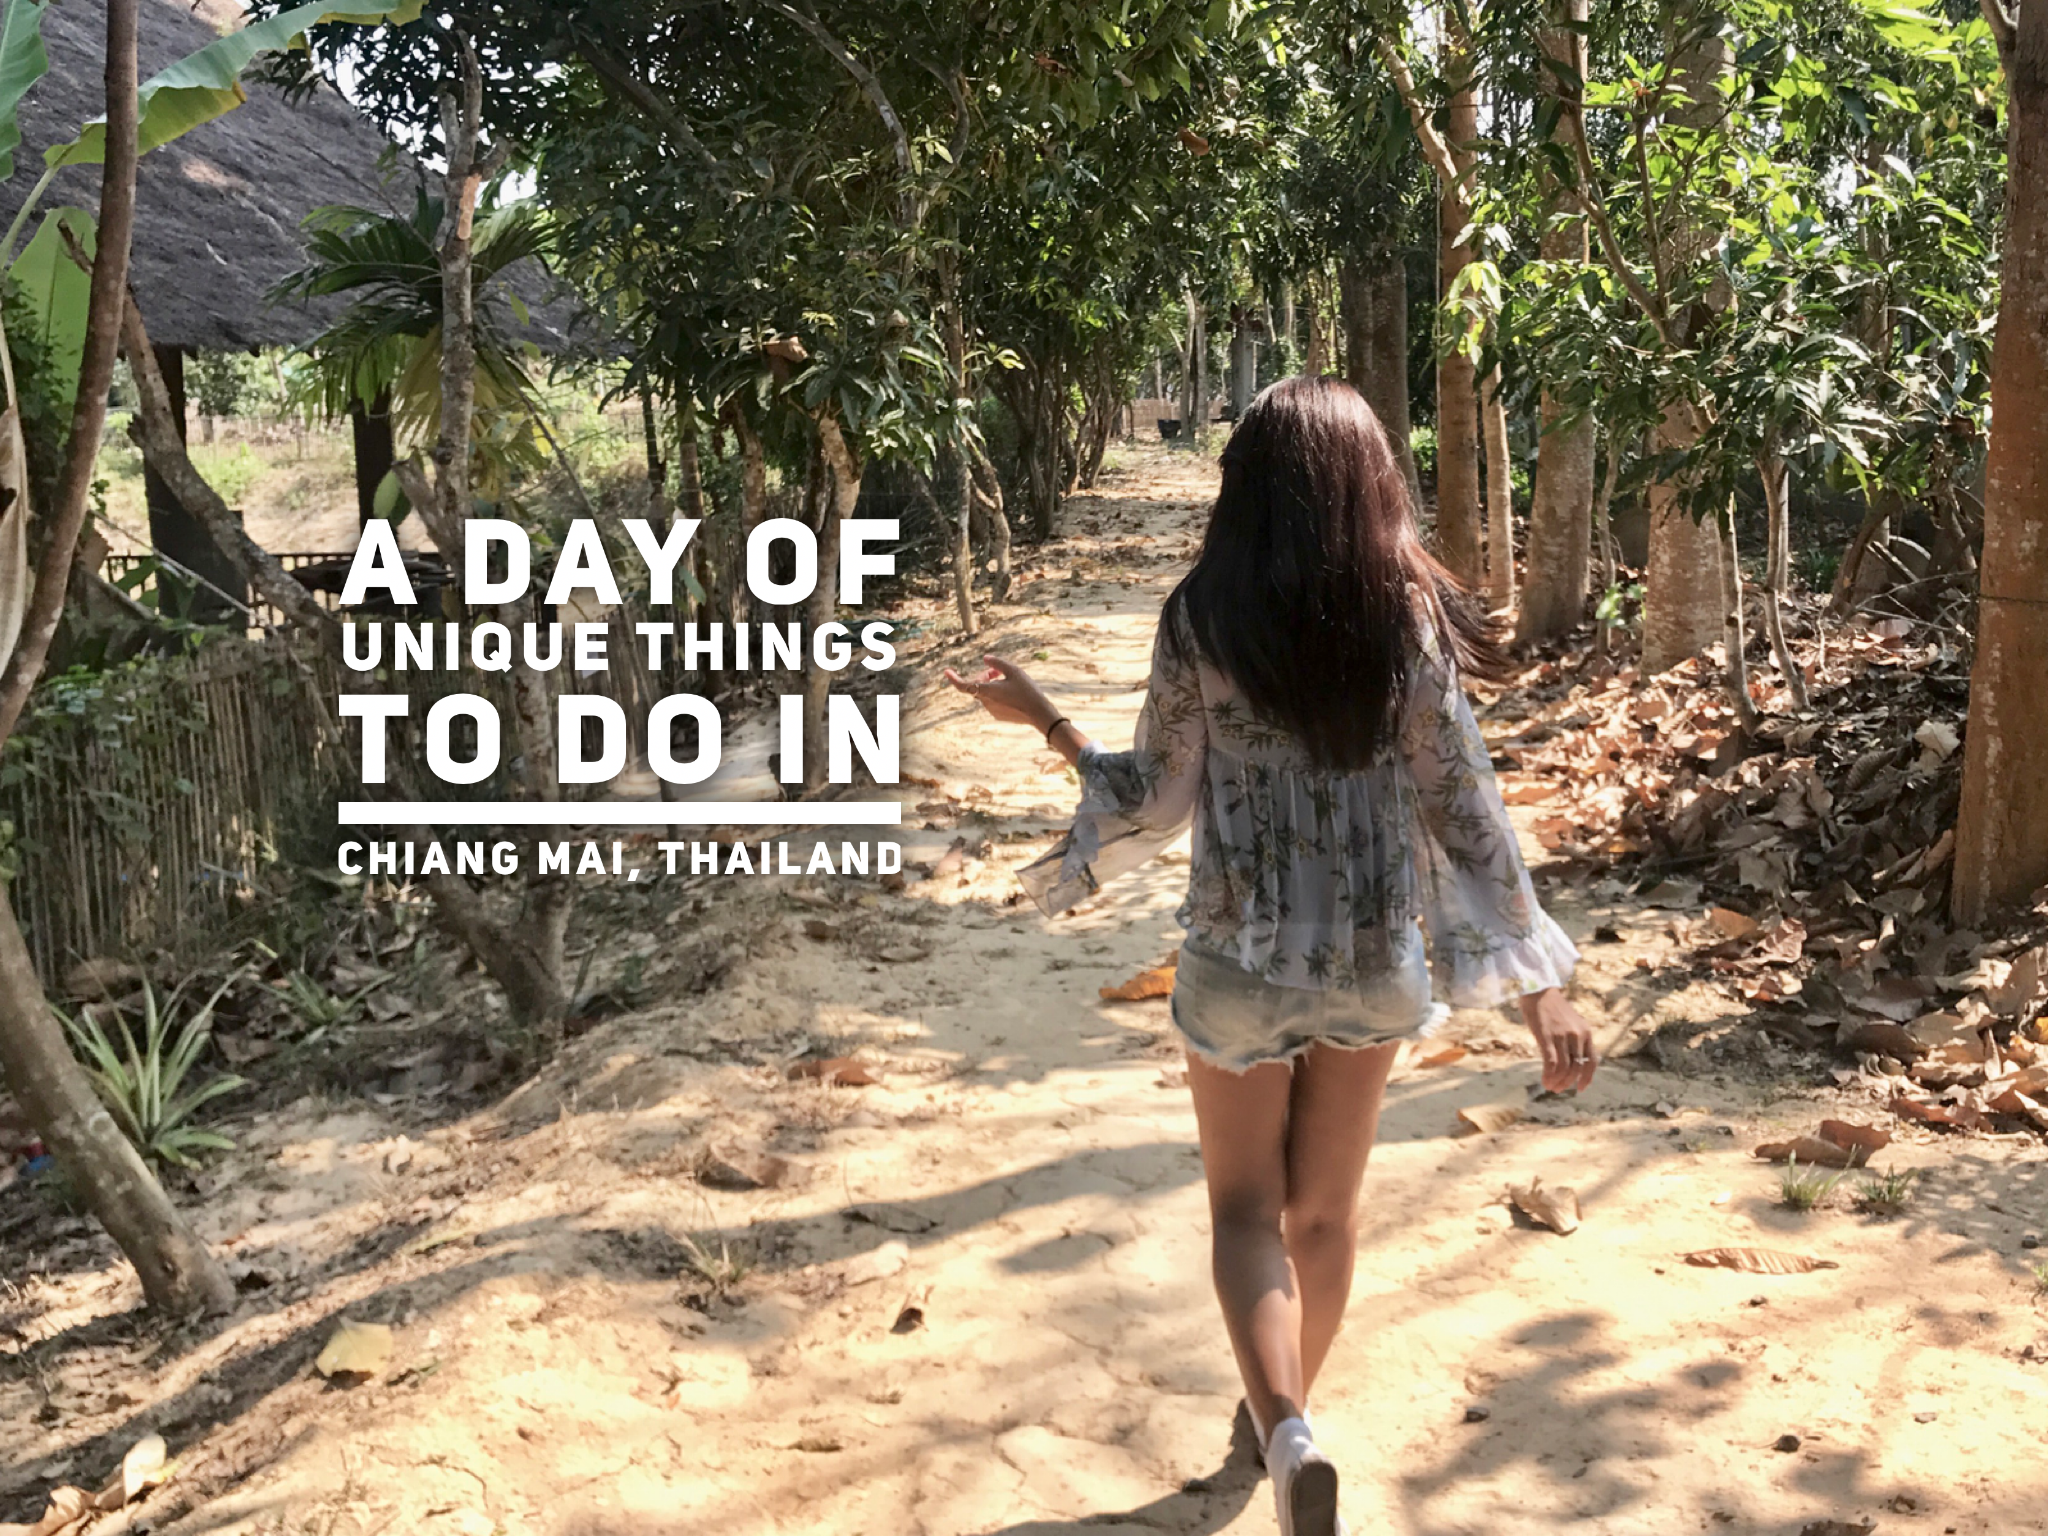 A Day of Unique Things to Do in Chiang Mai, Thailand